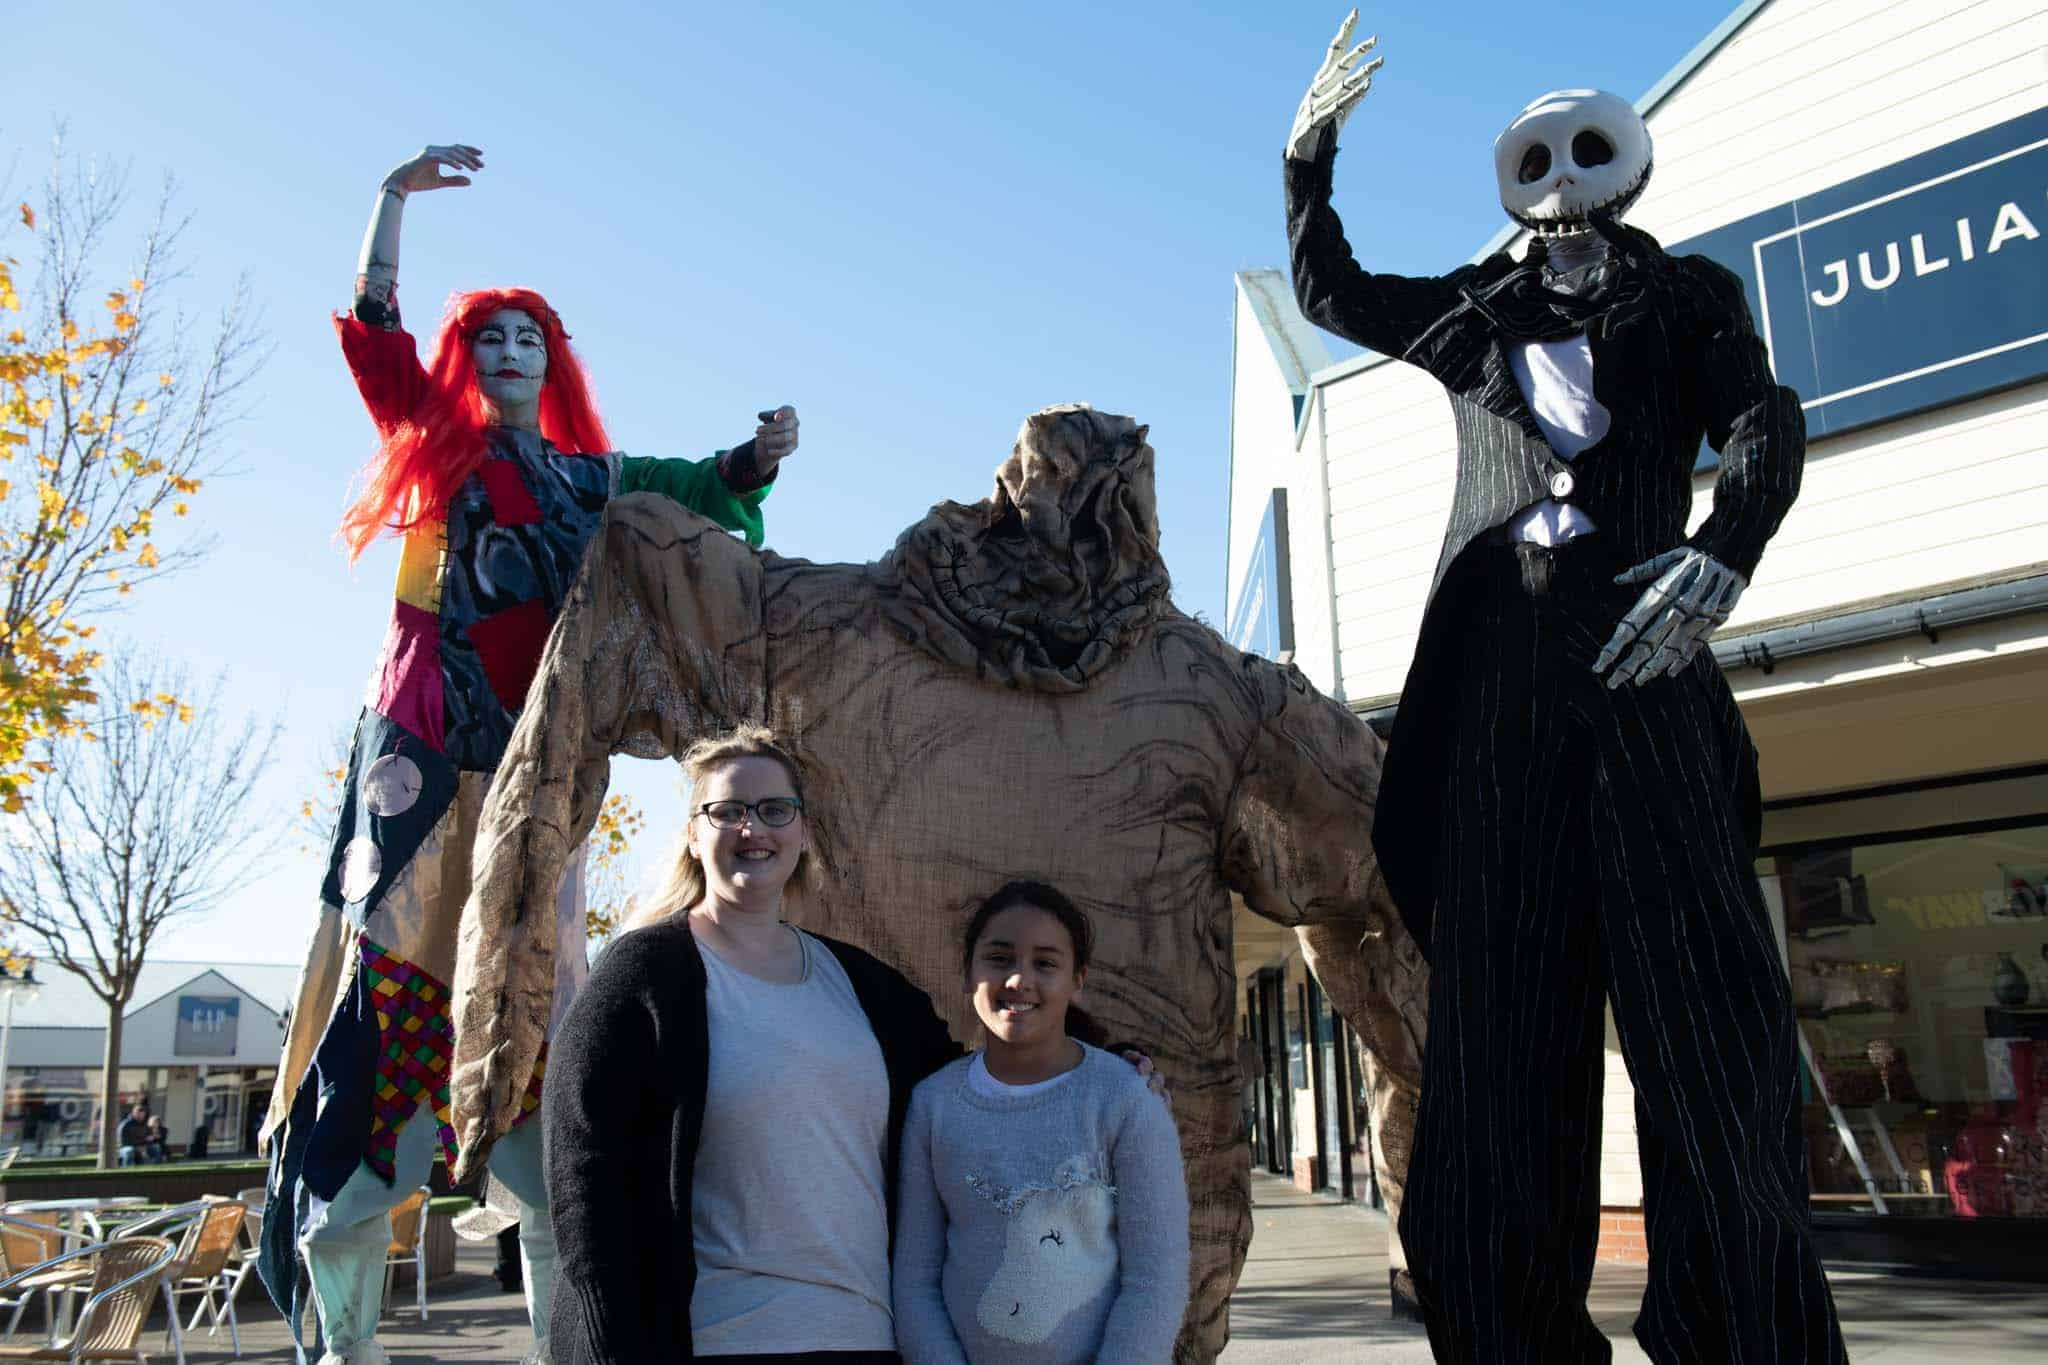 meeting halloween characters at affinity lancashire